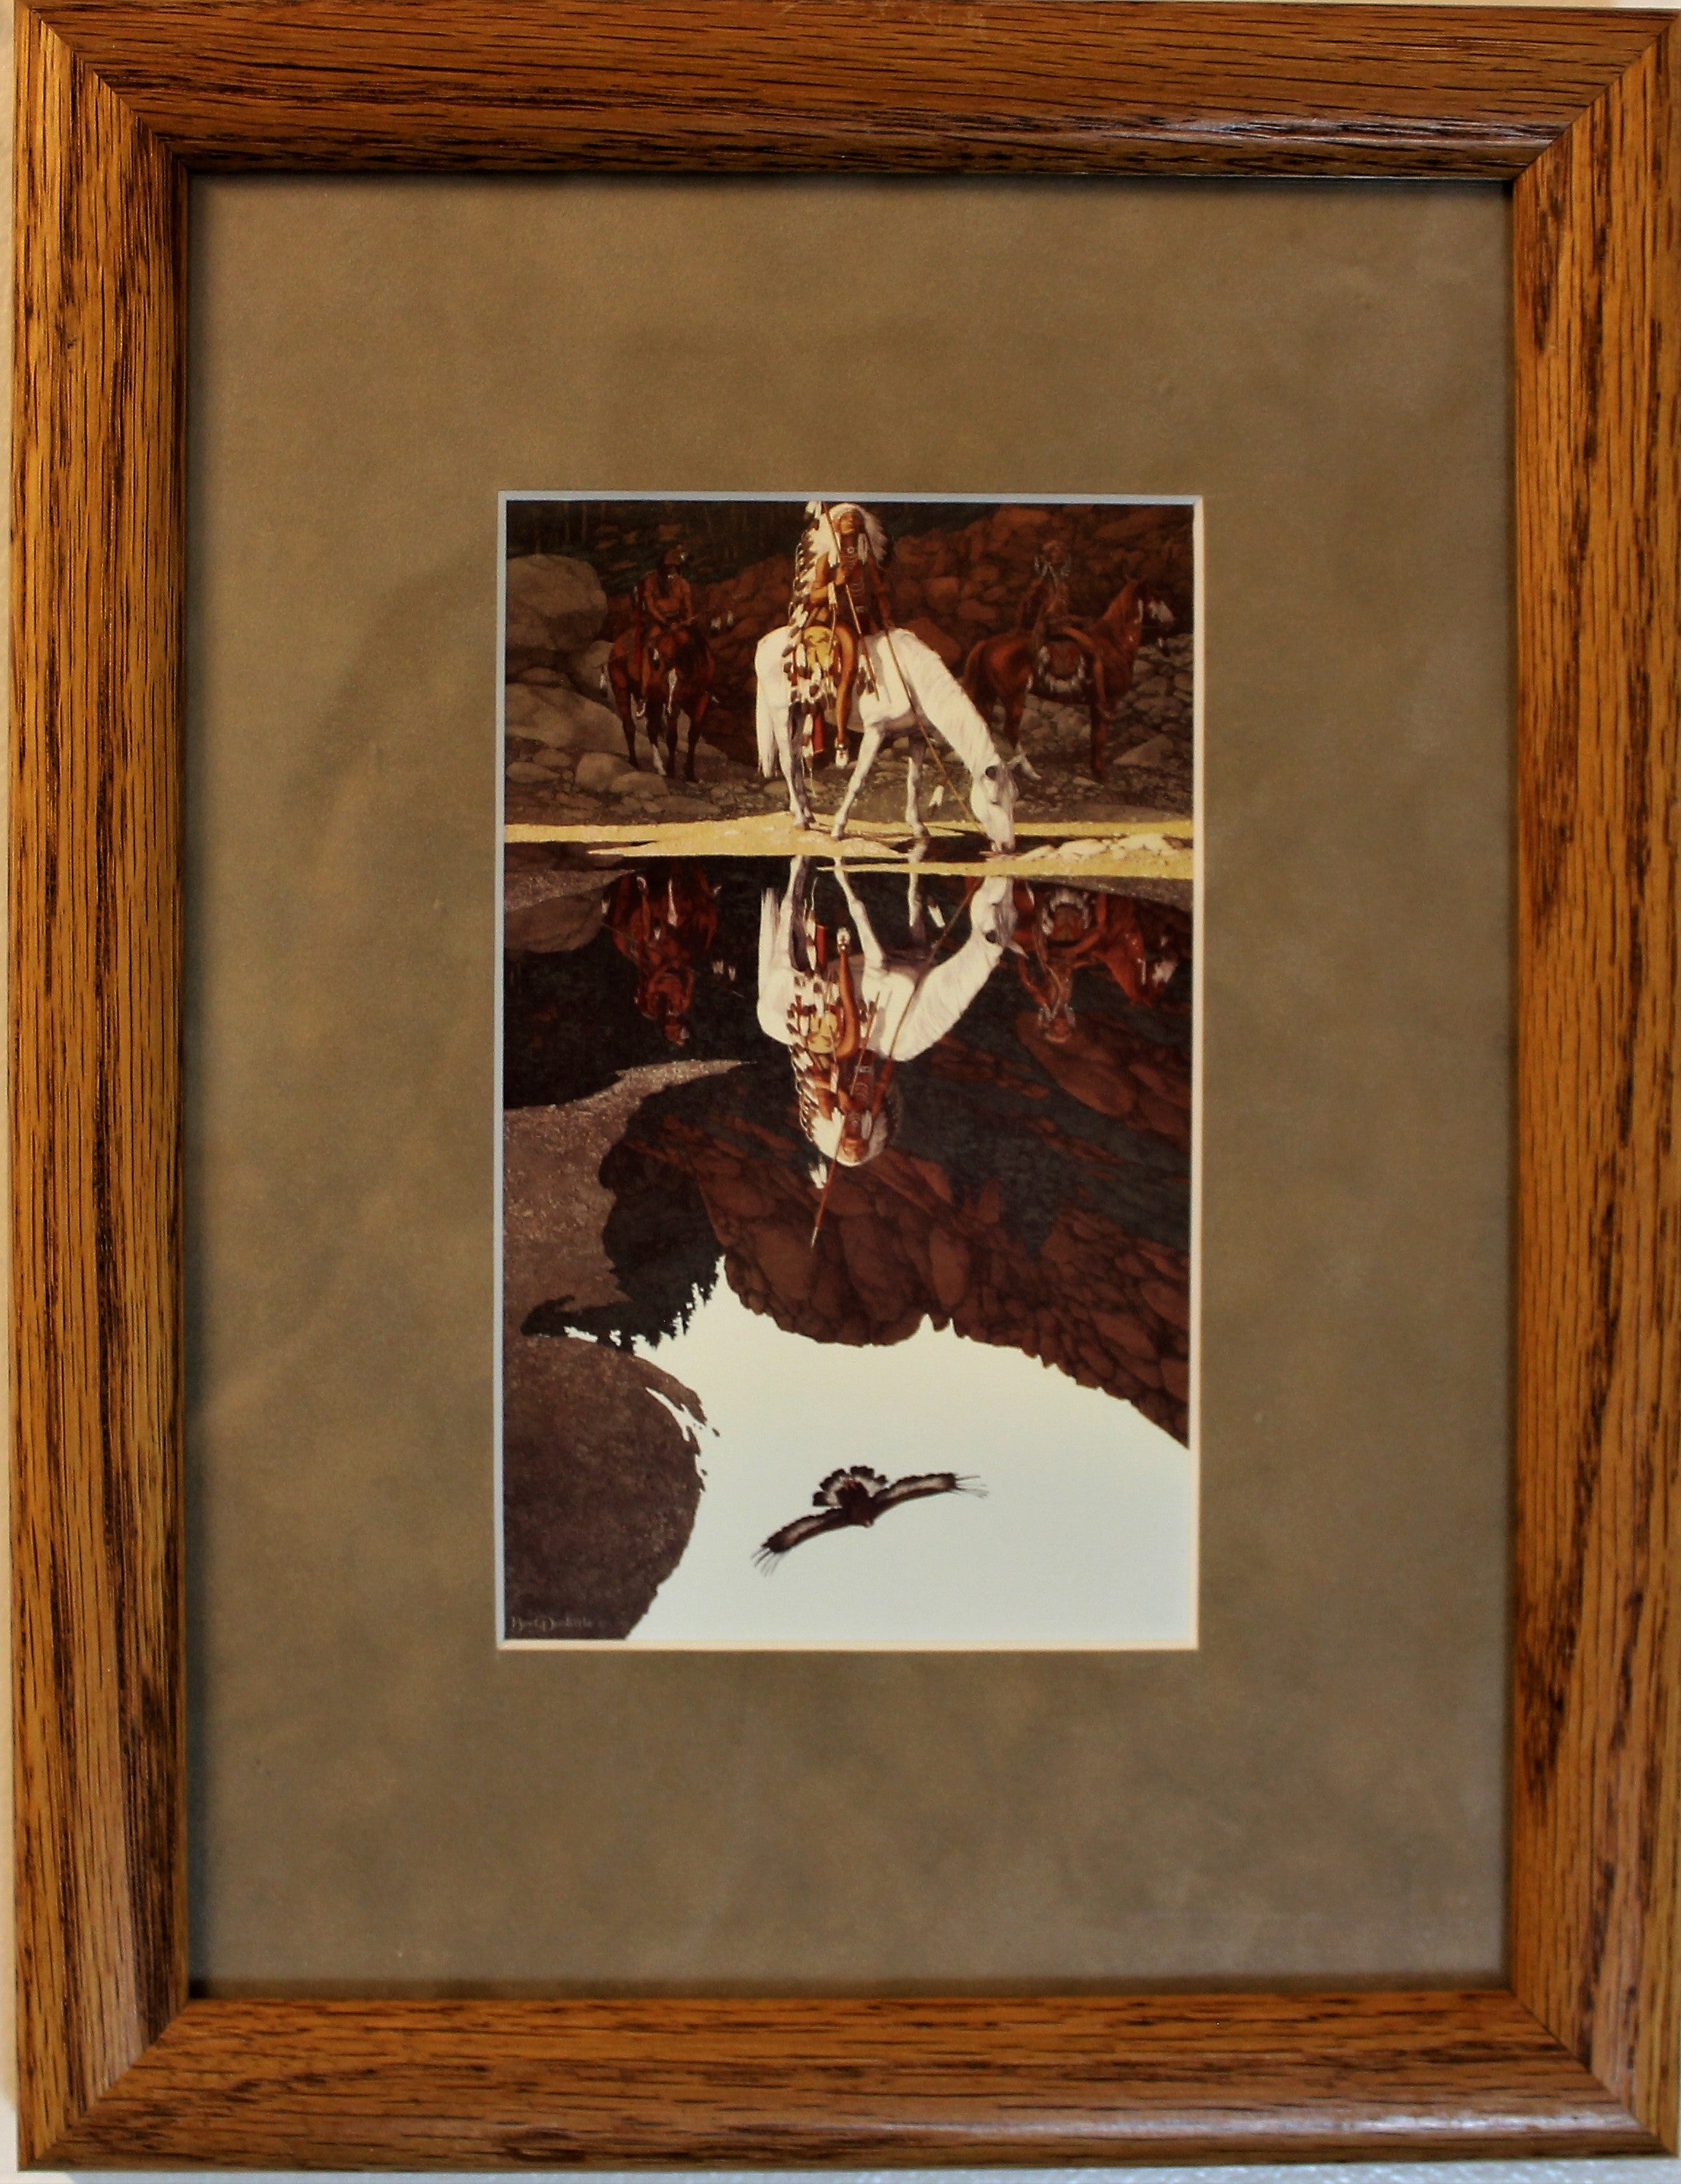 The Good Omen Print by Bev Doolittle